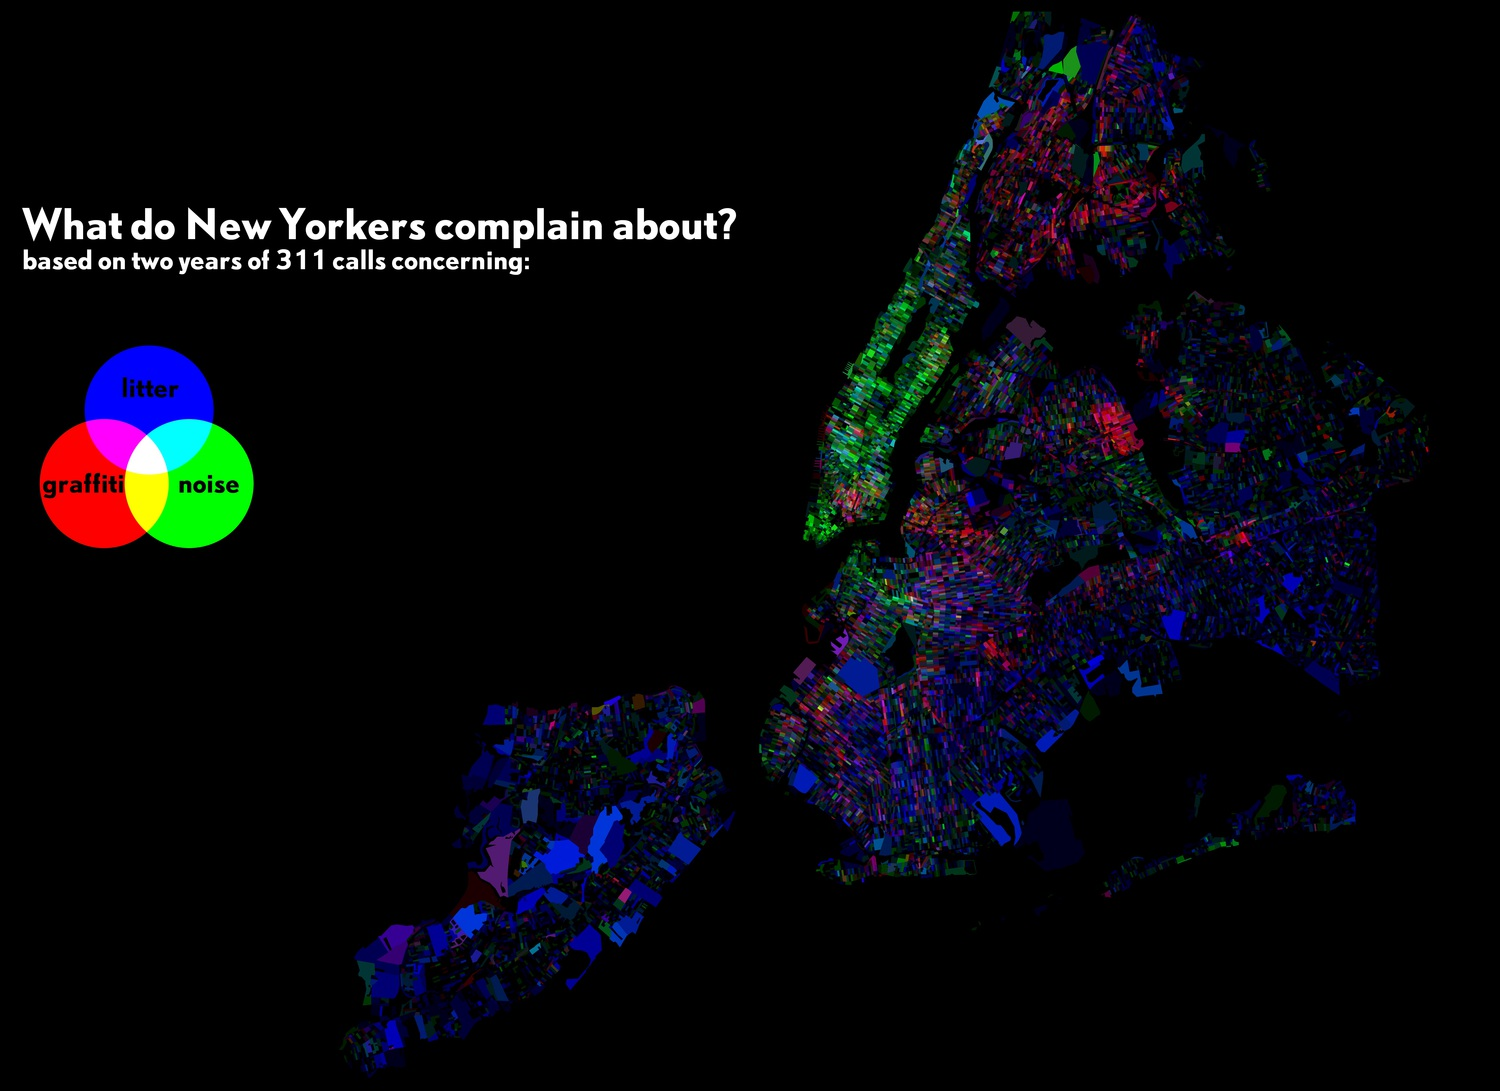 New Yorkers' Complaints to 311